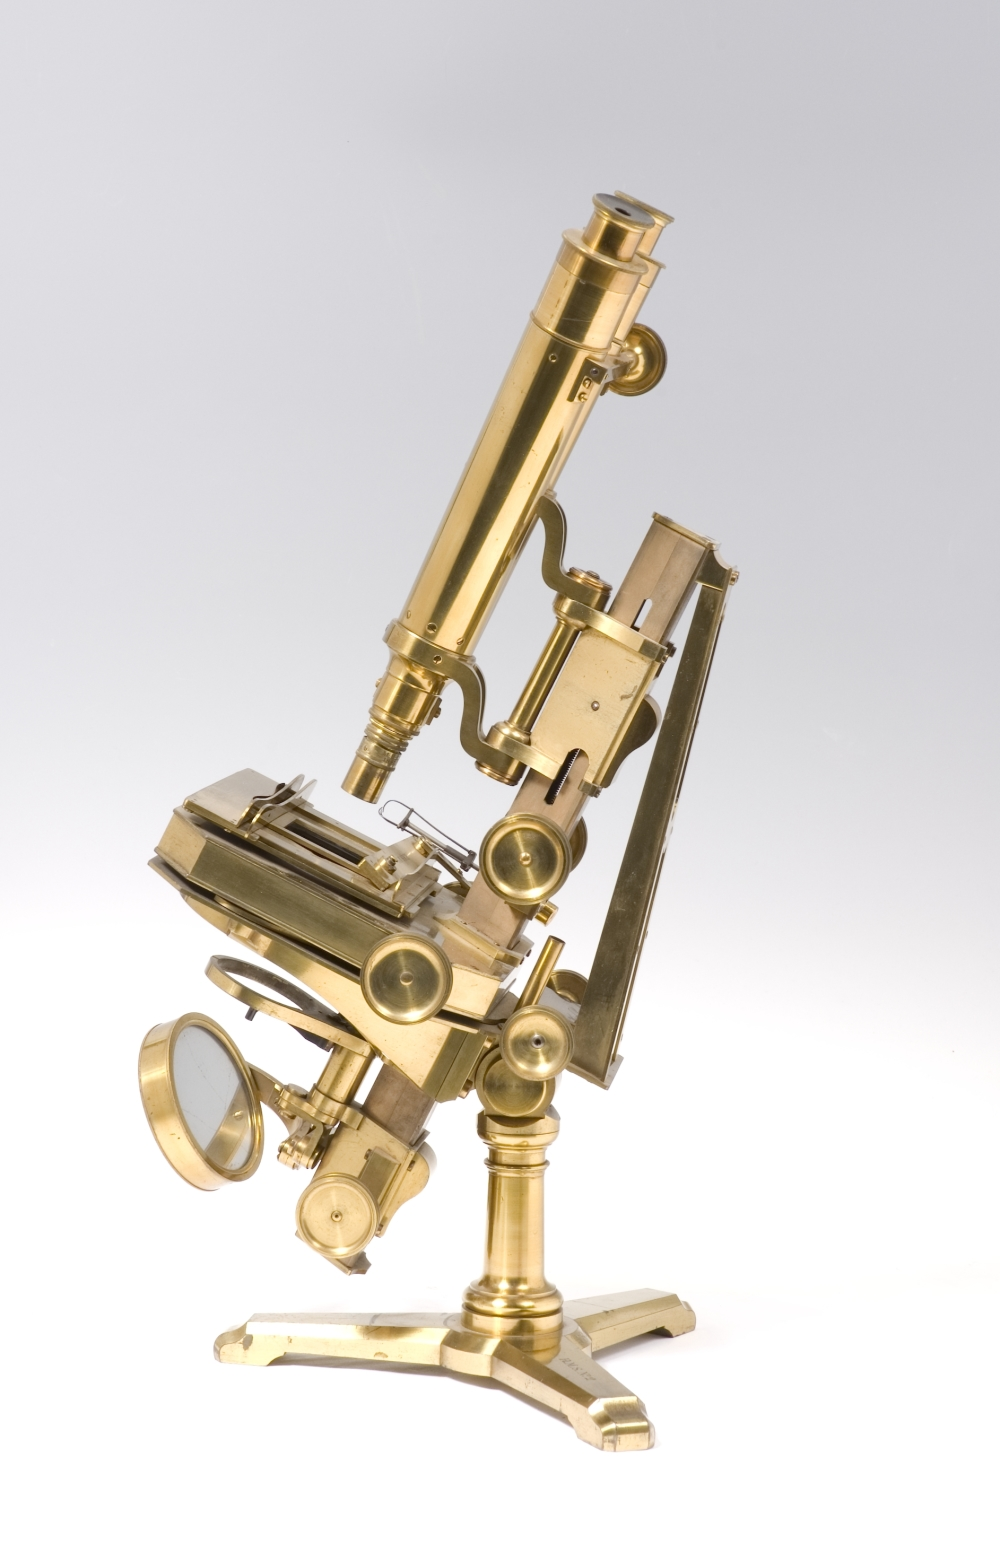 preview image for Compound Binocular Microscope with Accessories c. 1841